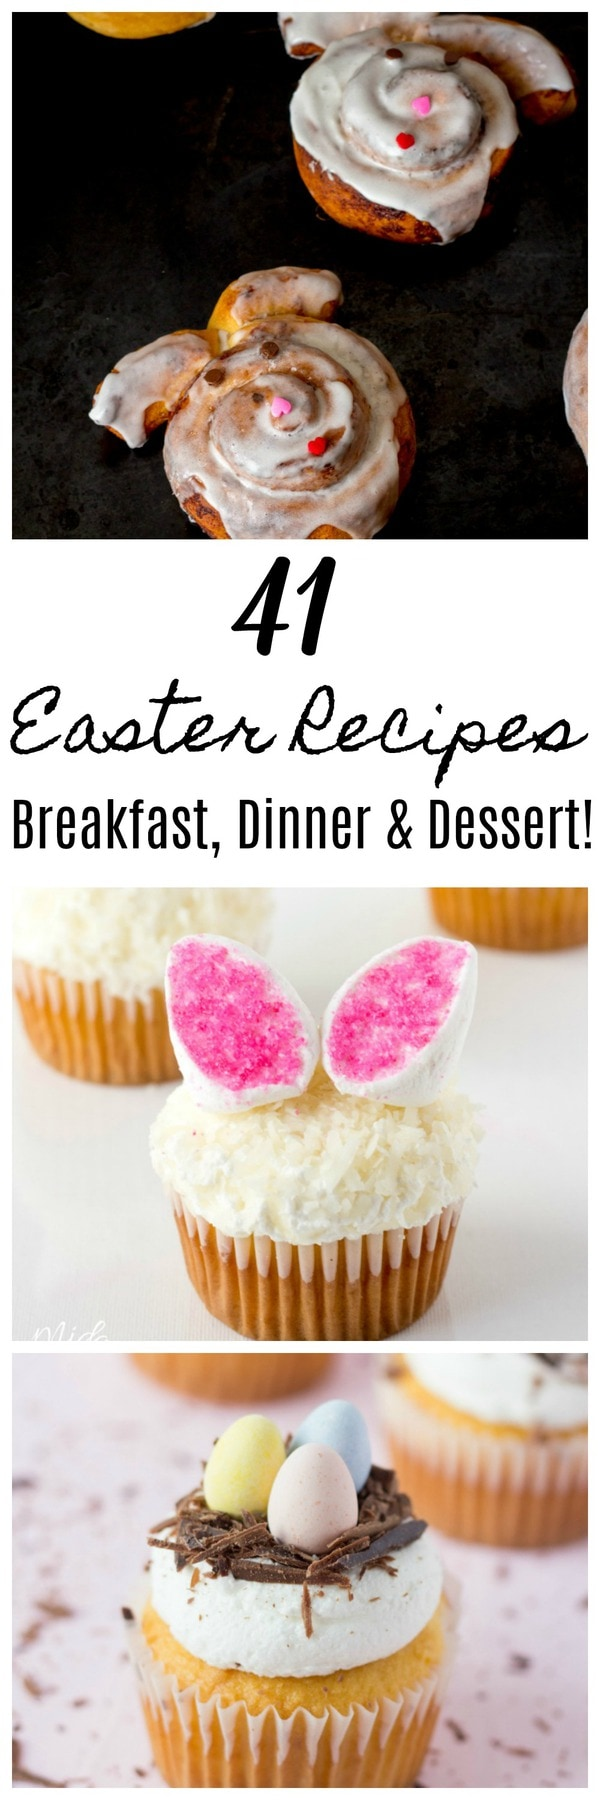 41 Awesome Easter Recipes! {Breakfast, Dinner & Desserts} #Eater #Dinner #Recipes #EasterRecipe #EasterEggs #Easterdinner #EasterBrunch #EasterBreakfast #EasterDesser #Desserts